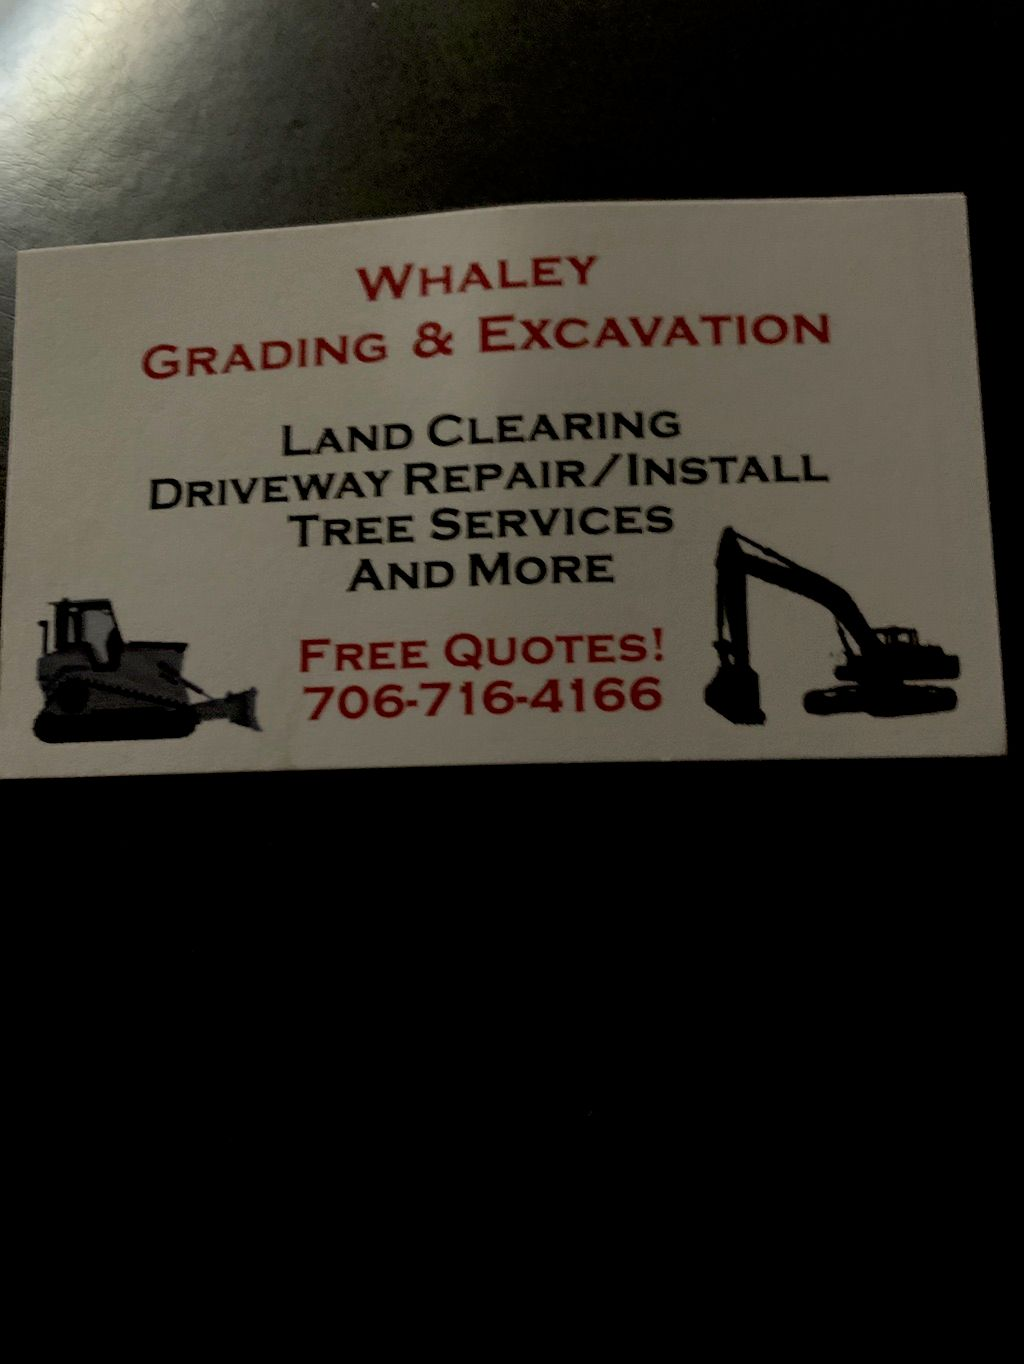 Whaley Grading & Excavation